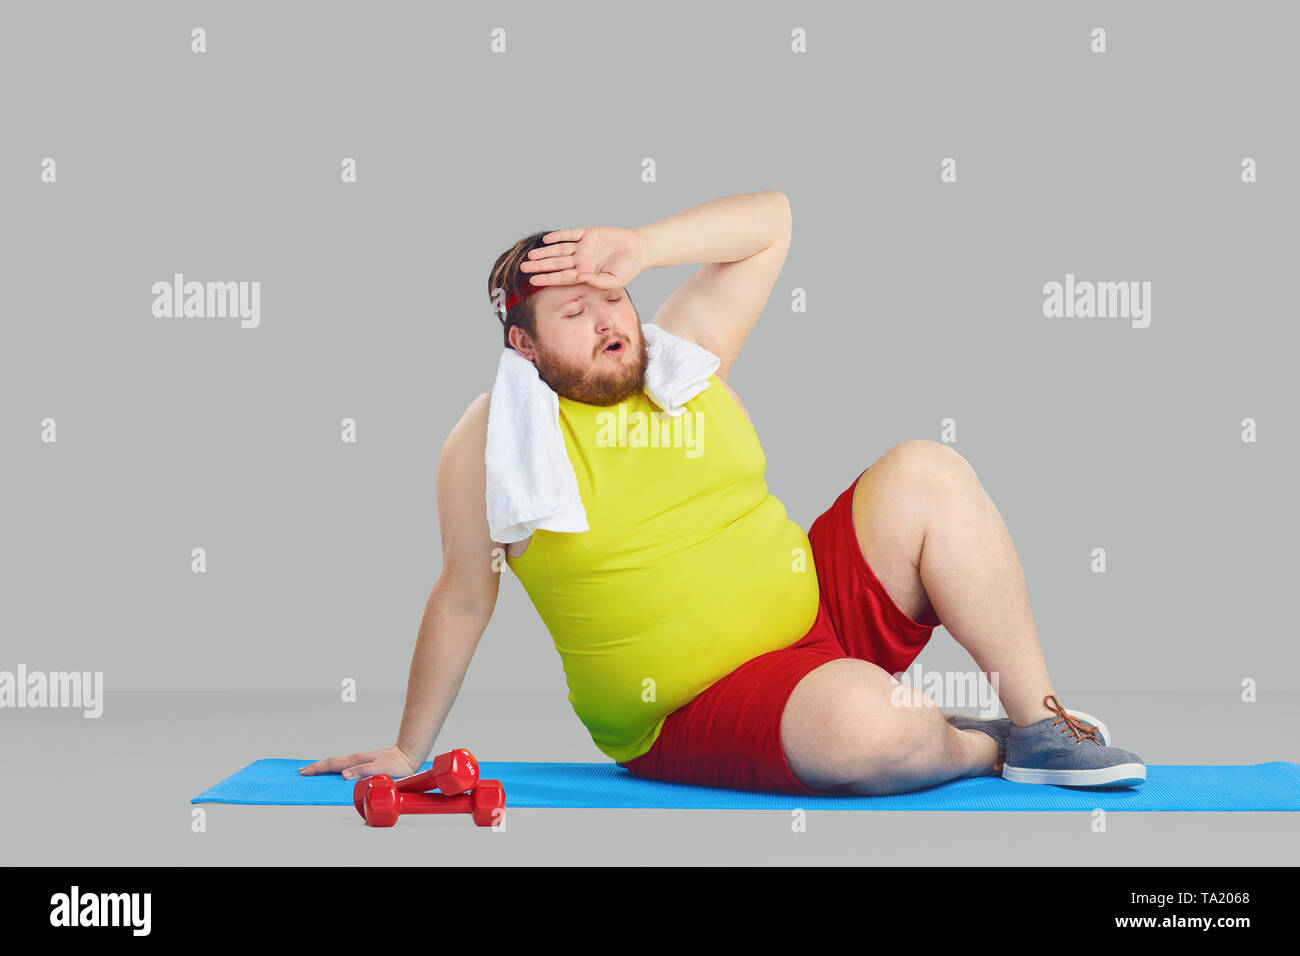 A fat man in sportswear tired wipes the sweat from his forehead sitting on the floor against a gray background. - Stock Image